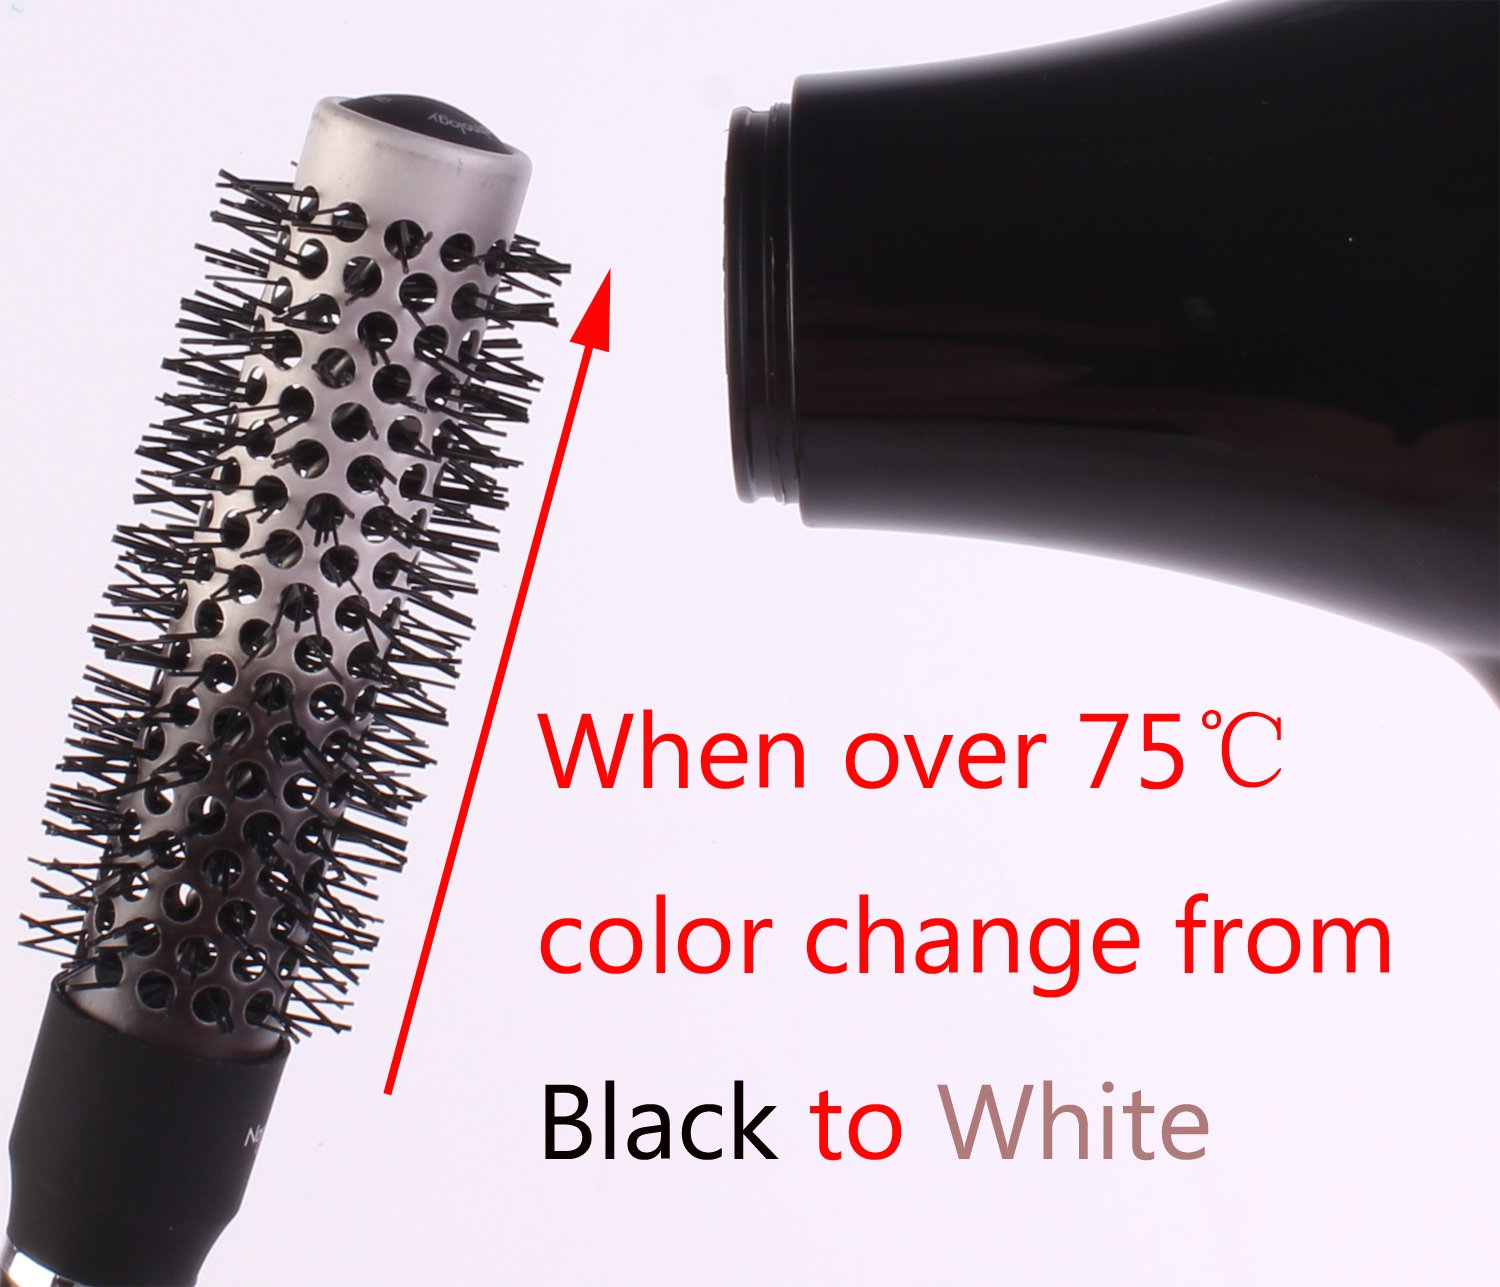 Round Thermal Brush Set, Professional Nano Ceramic & Ionic Barrel Hair Styling Blow Drying Curling Brush, 5 Different Sizes by Perfehair (Image #2)